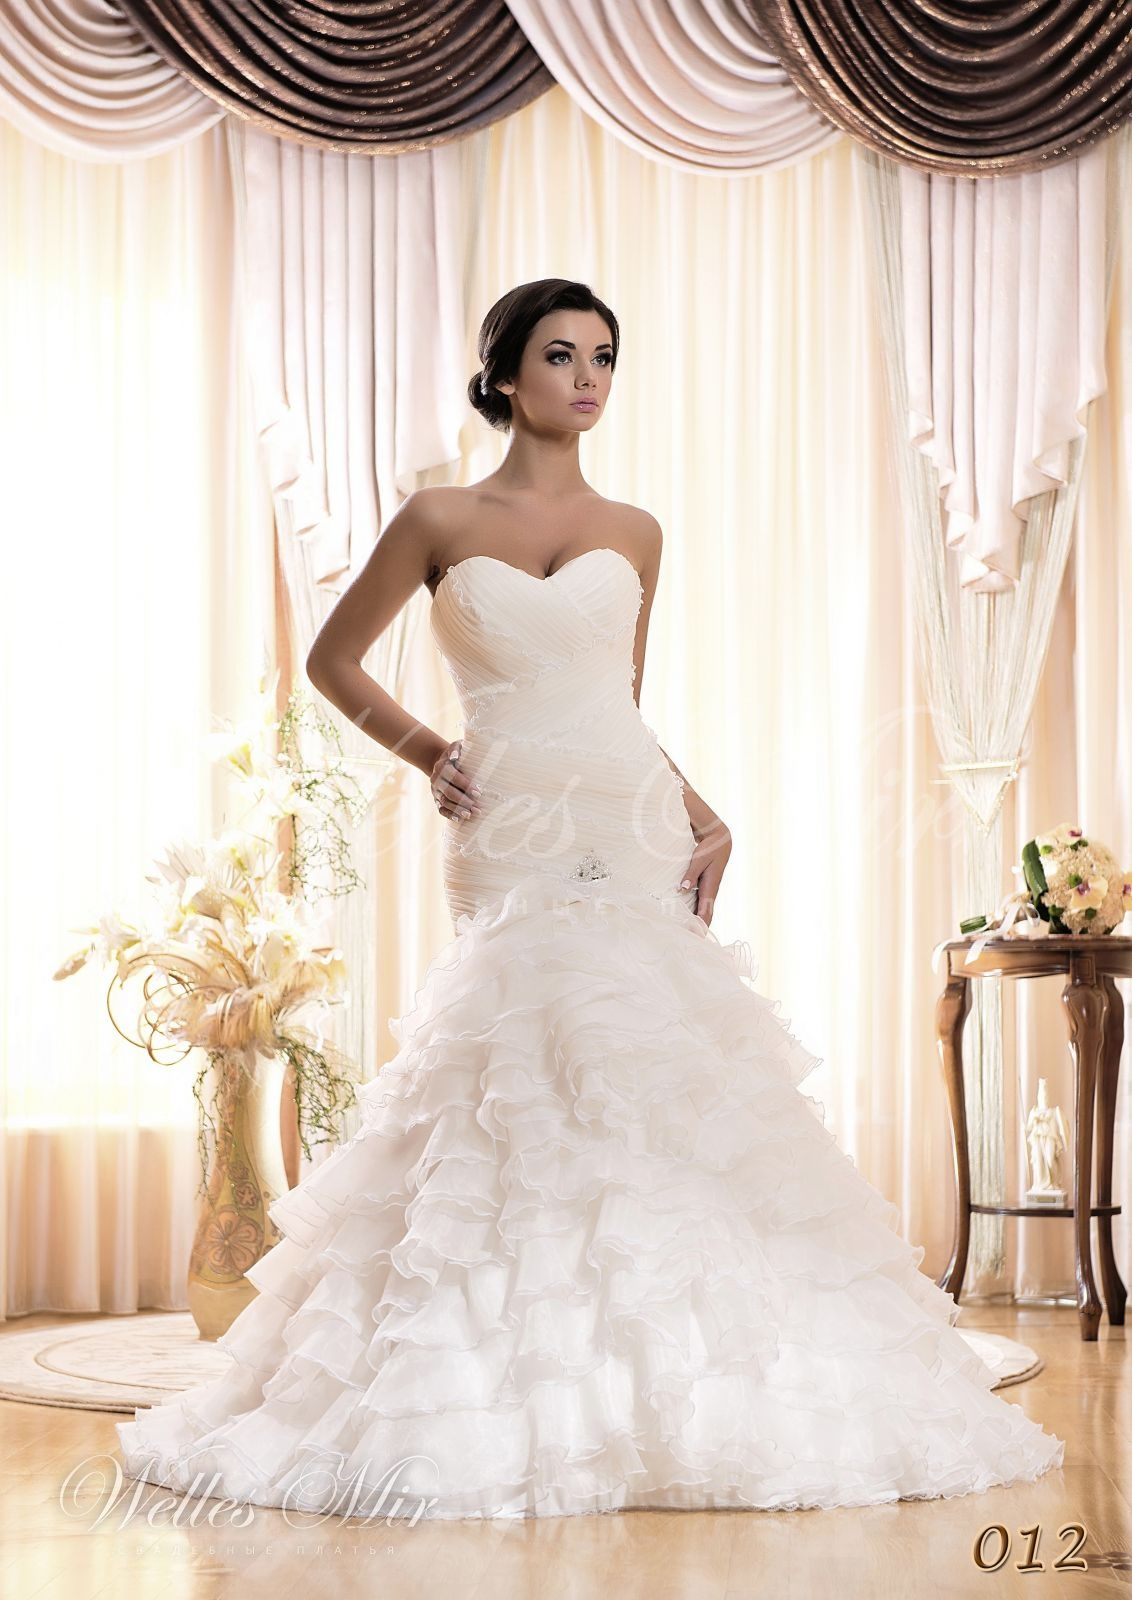 Wedding dresses 012